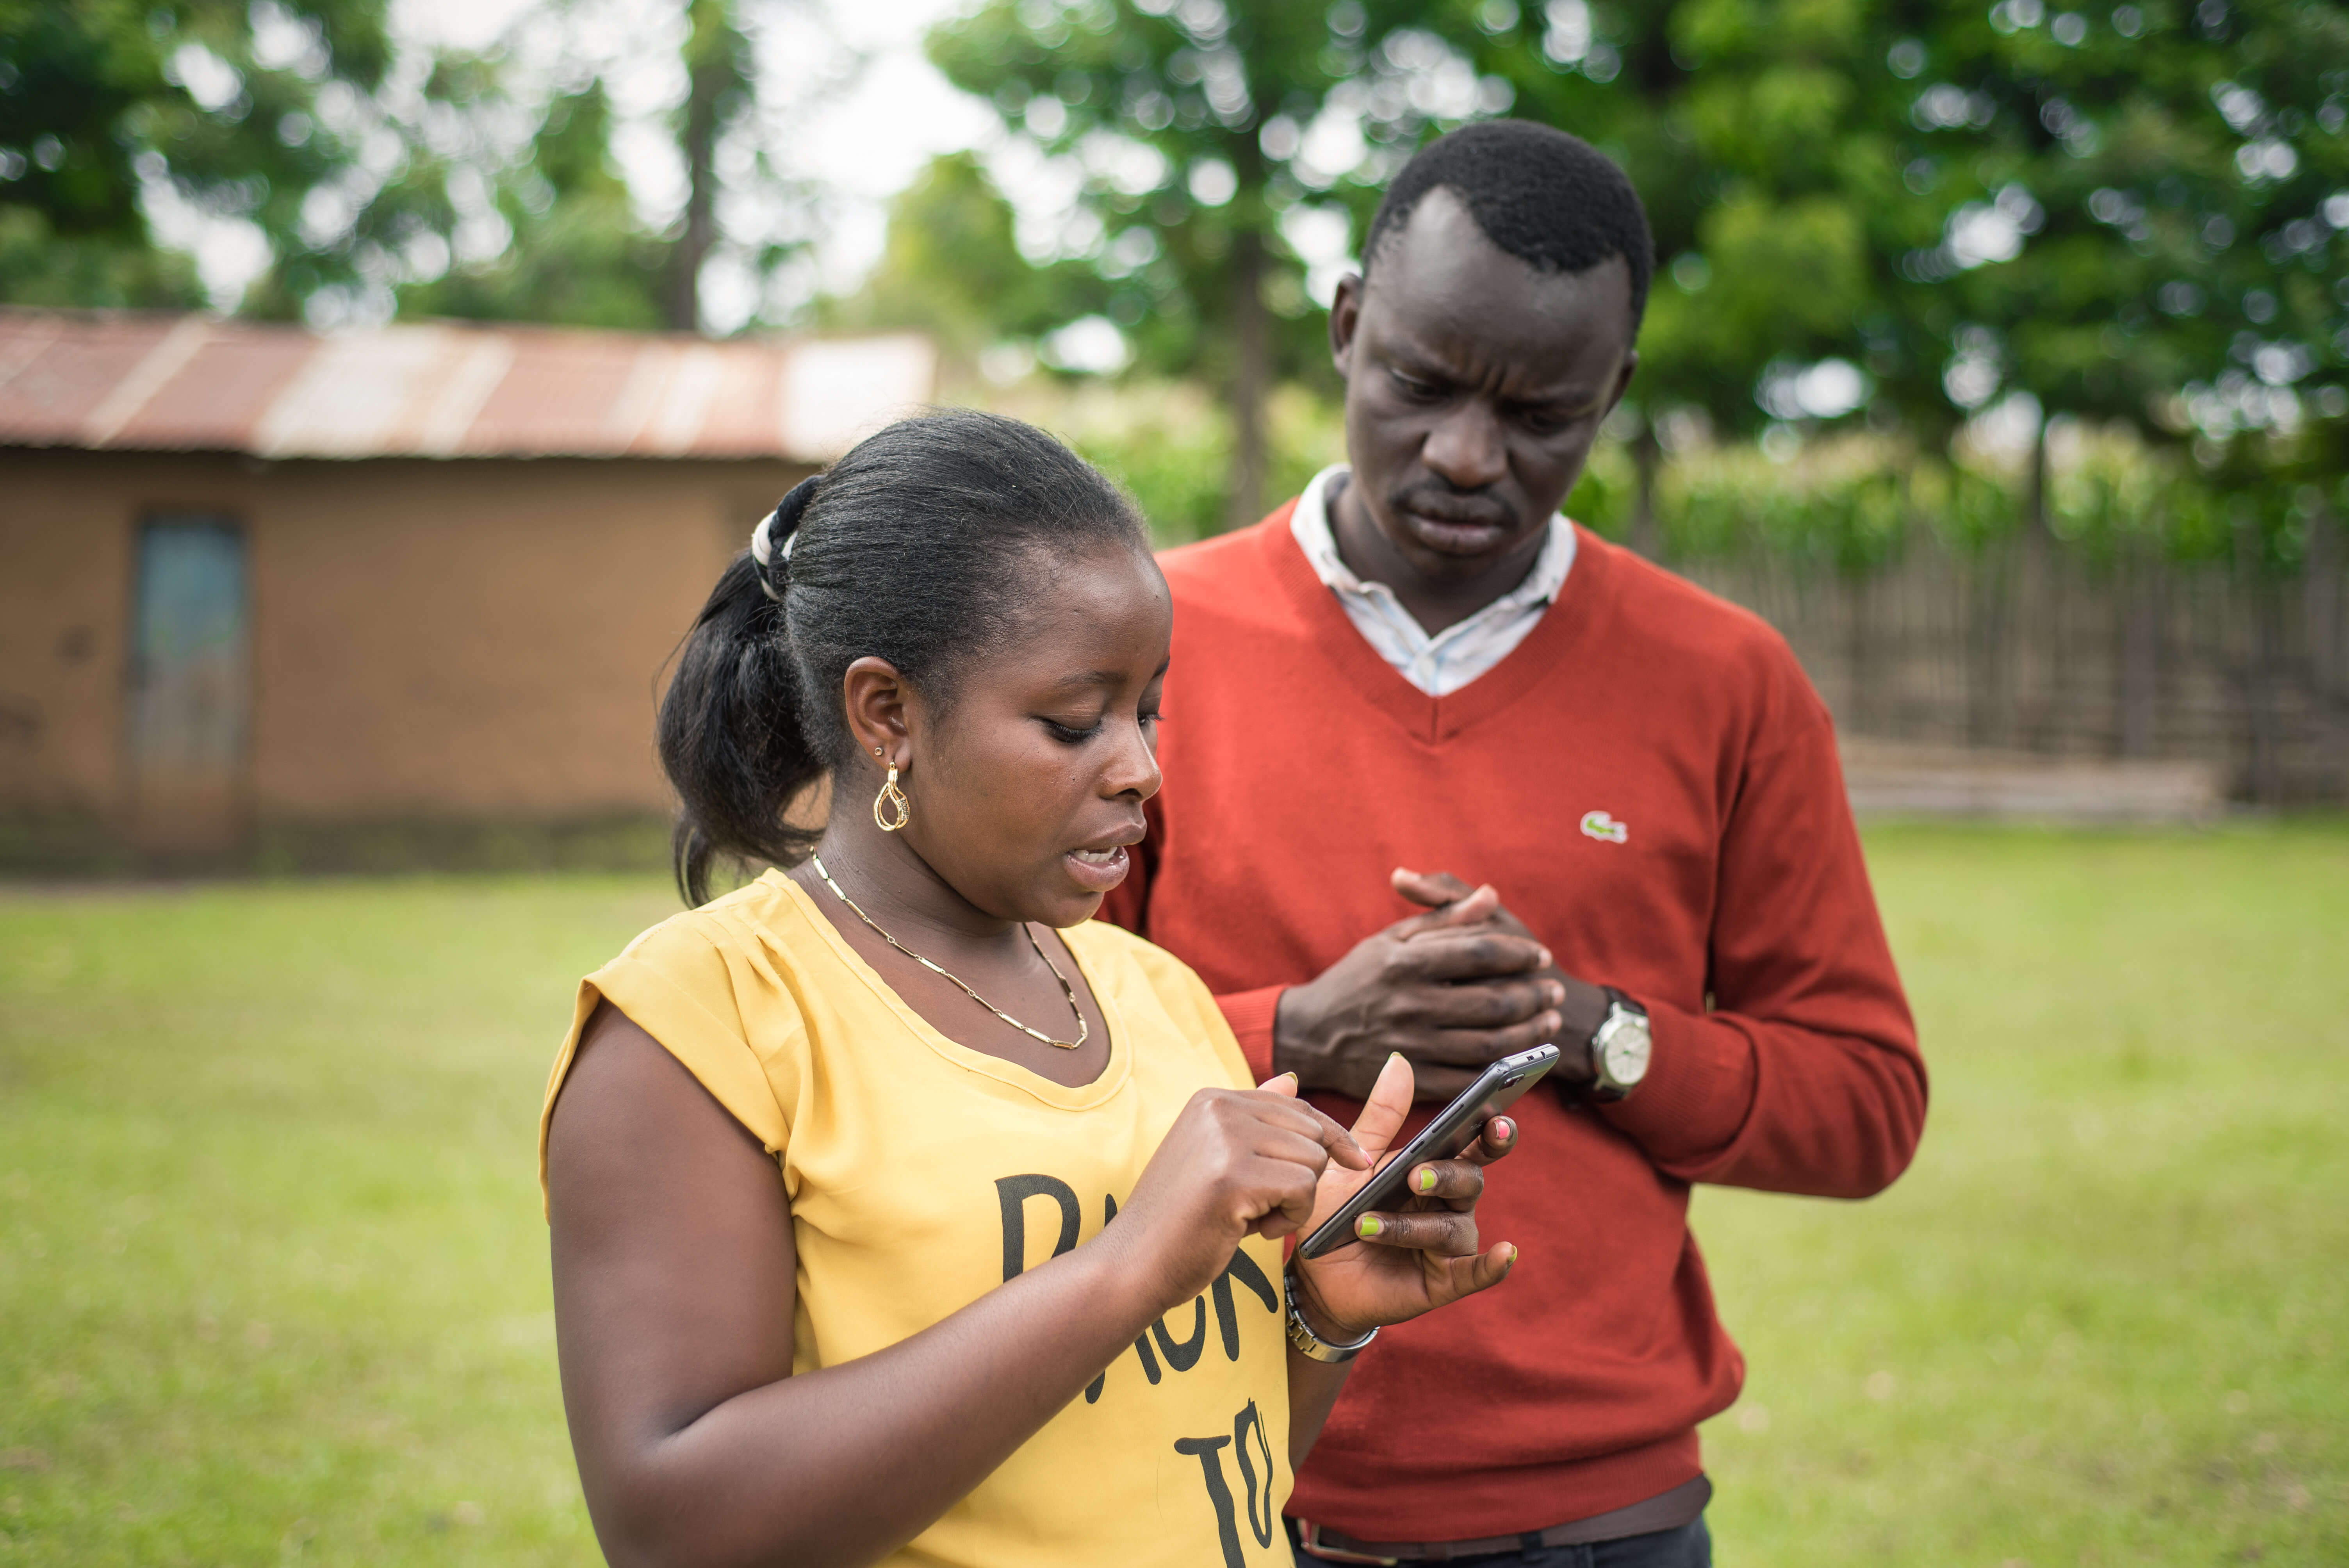 Apollo Agriculture field associate Rebecca setting up an account with a farmer client